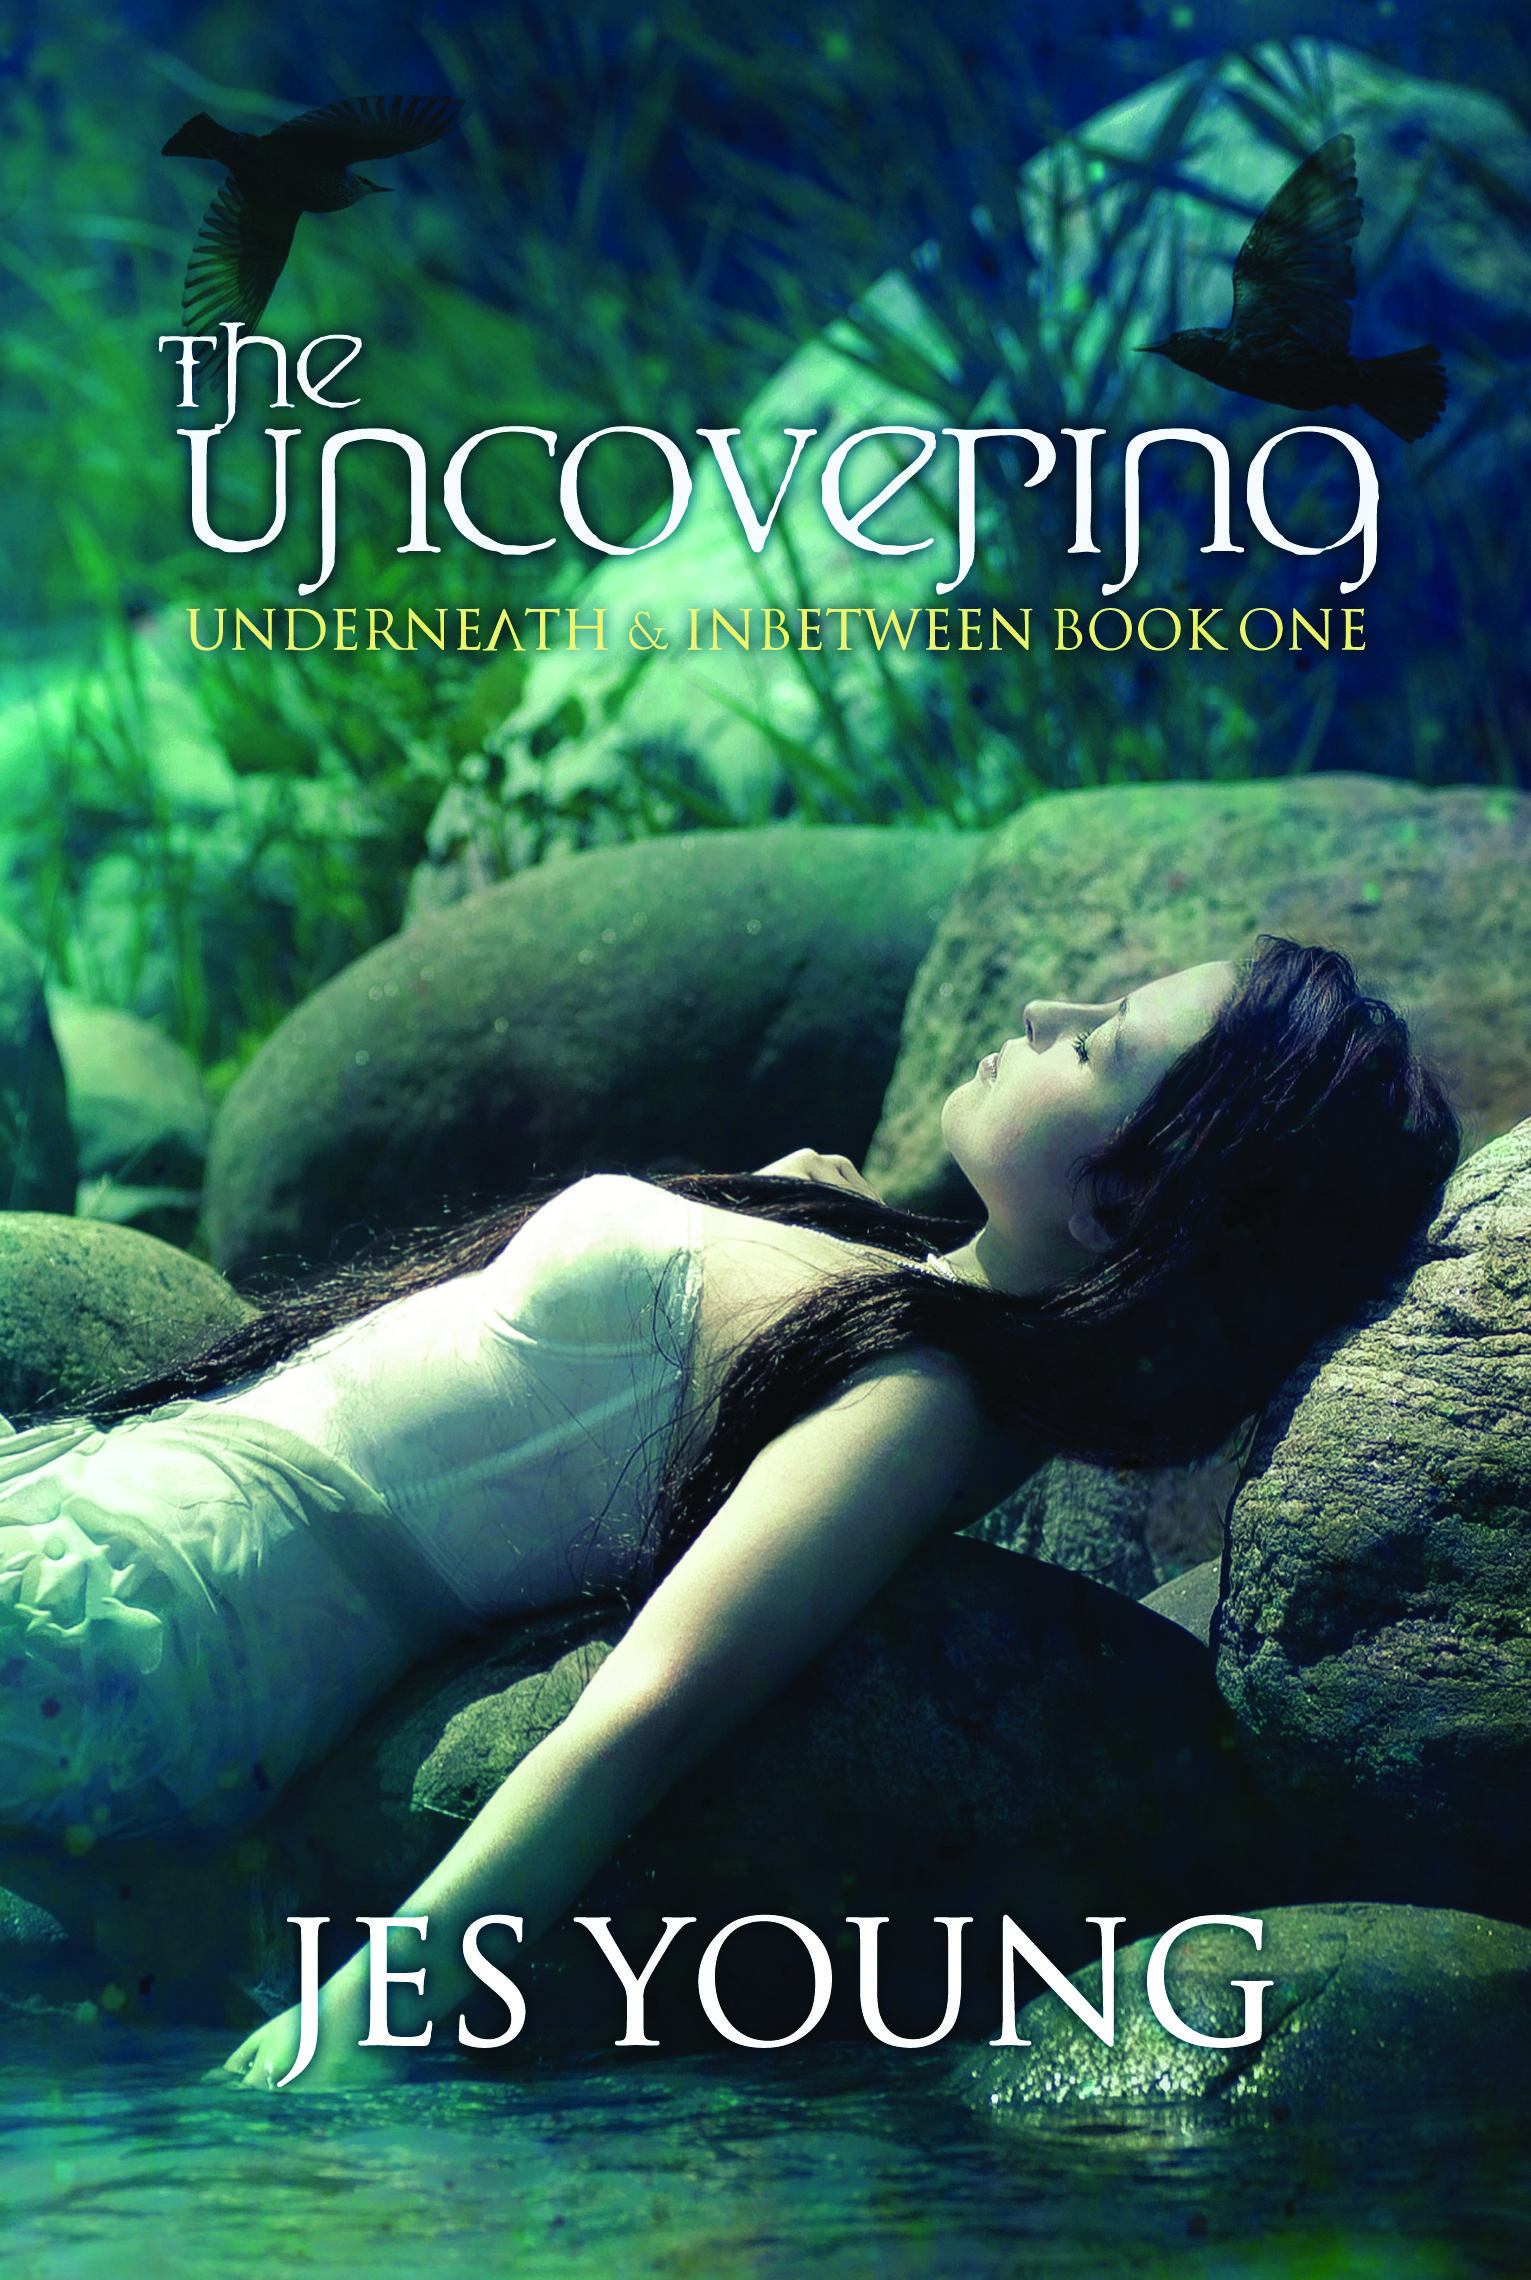 TheUncovering